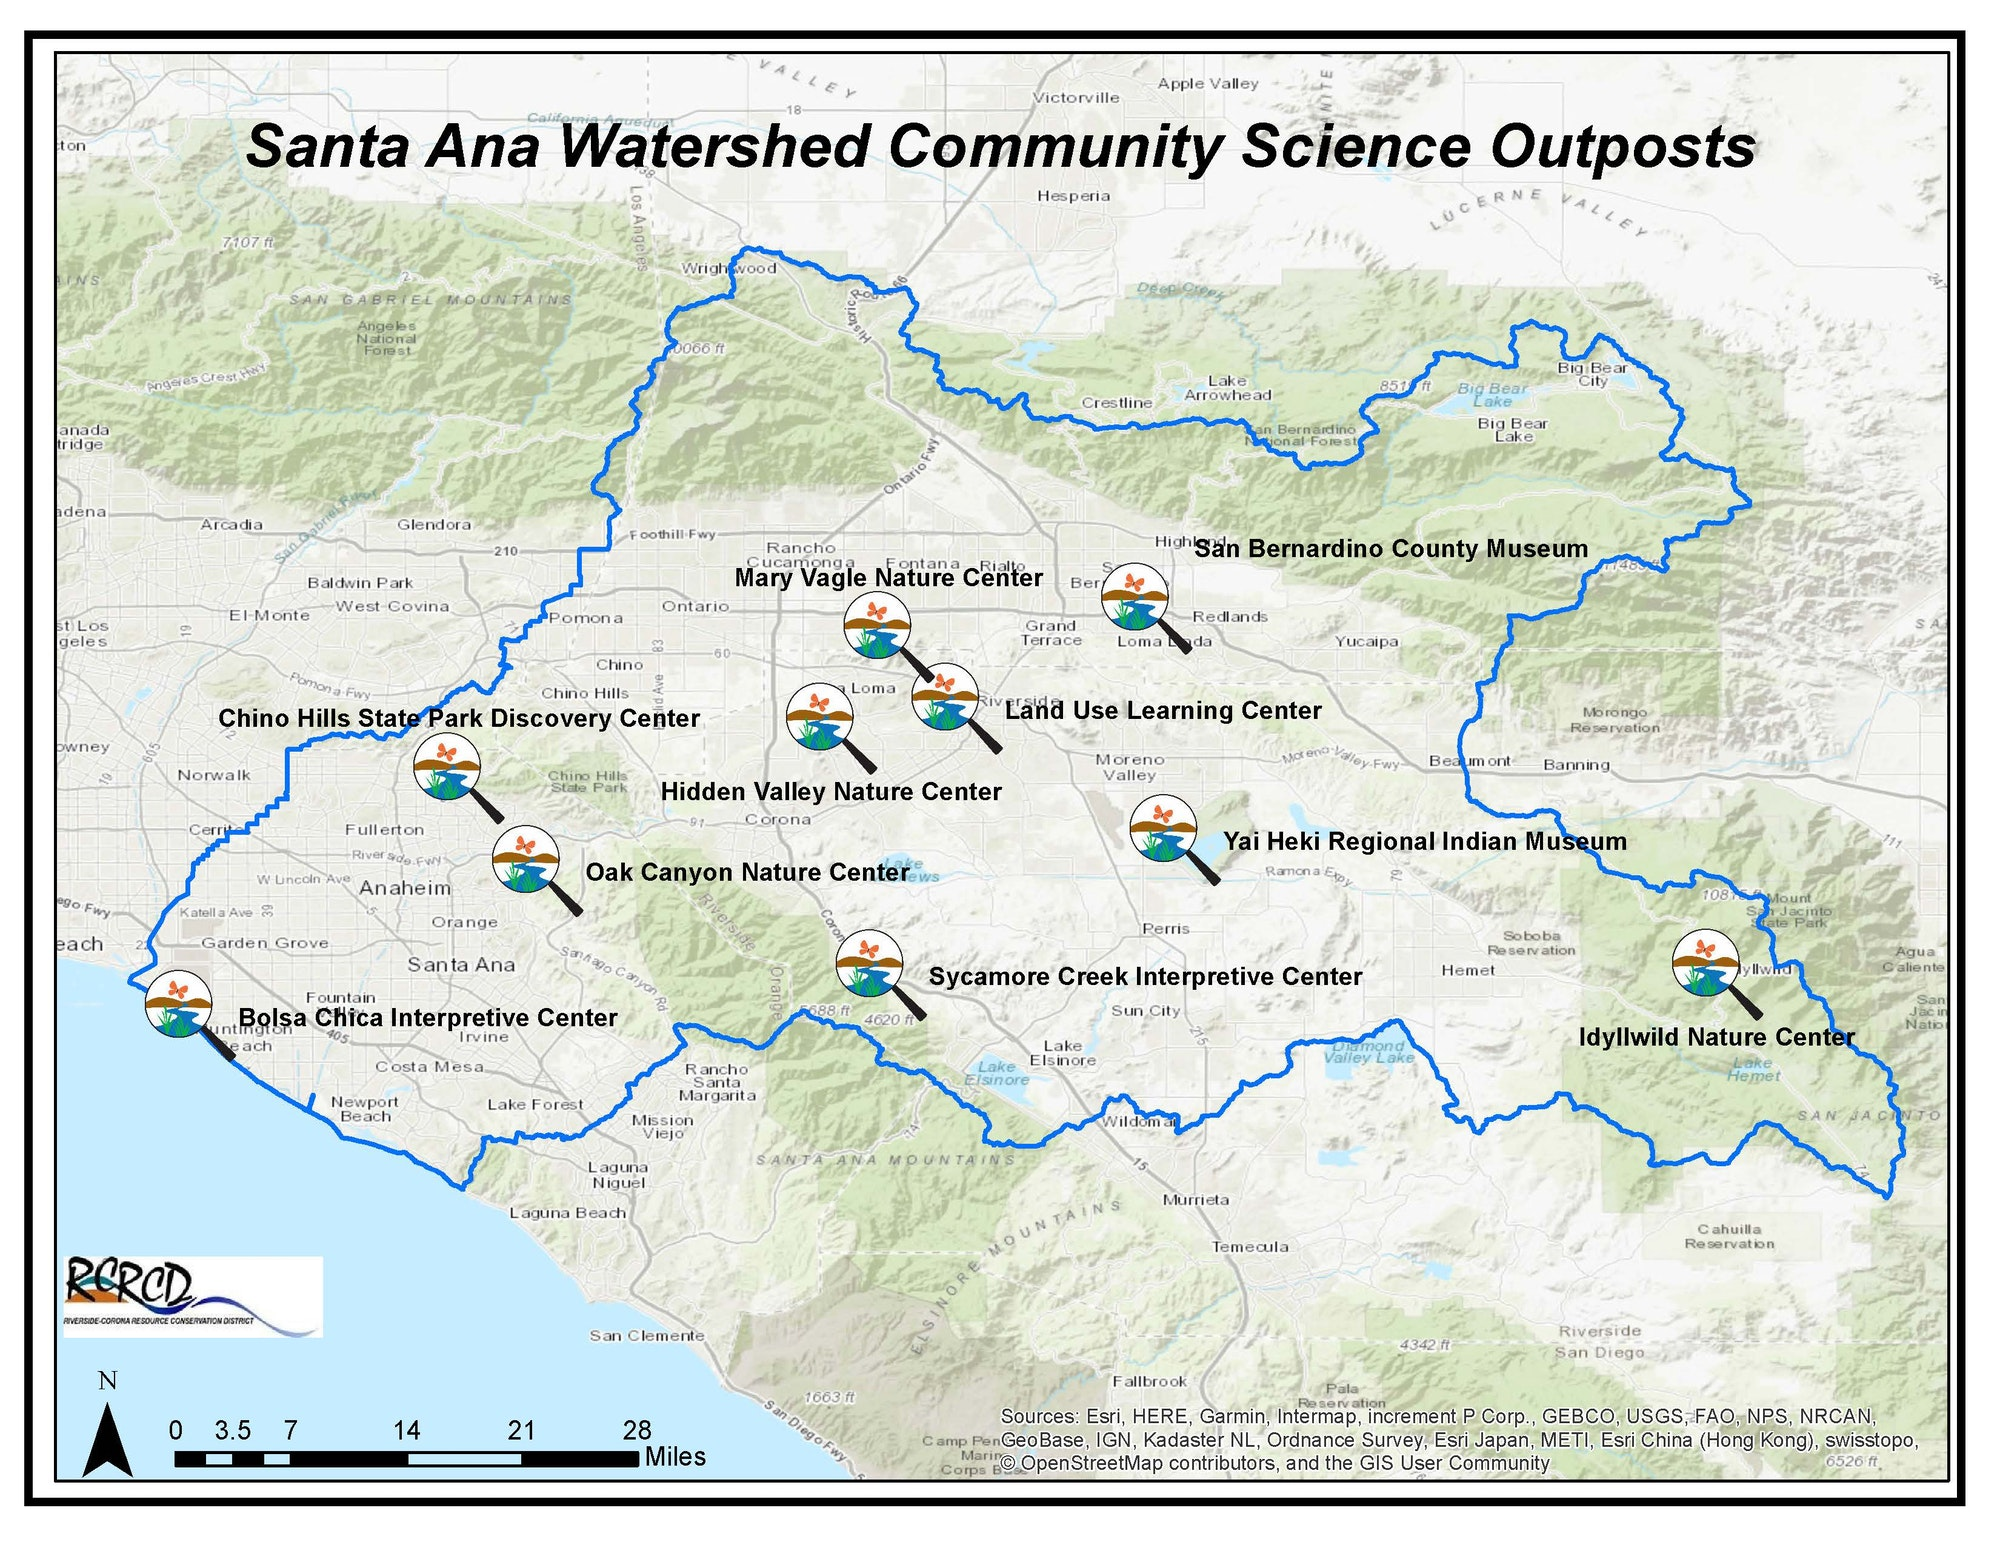 Map of the Santa Ana Watershed and location of Citizen Science Outposts